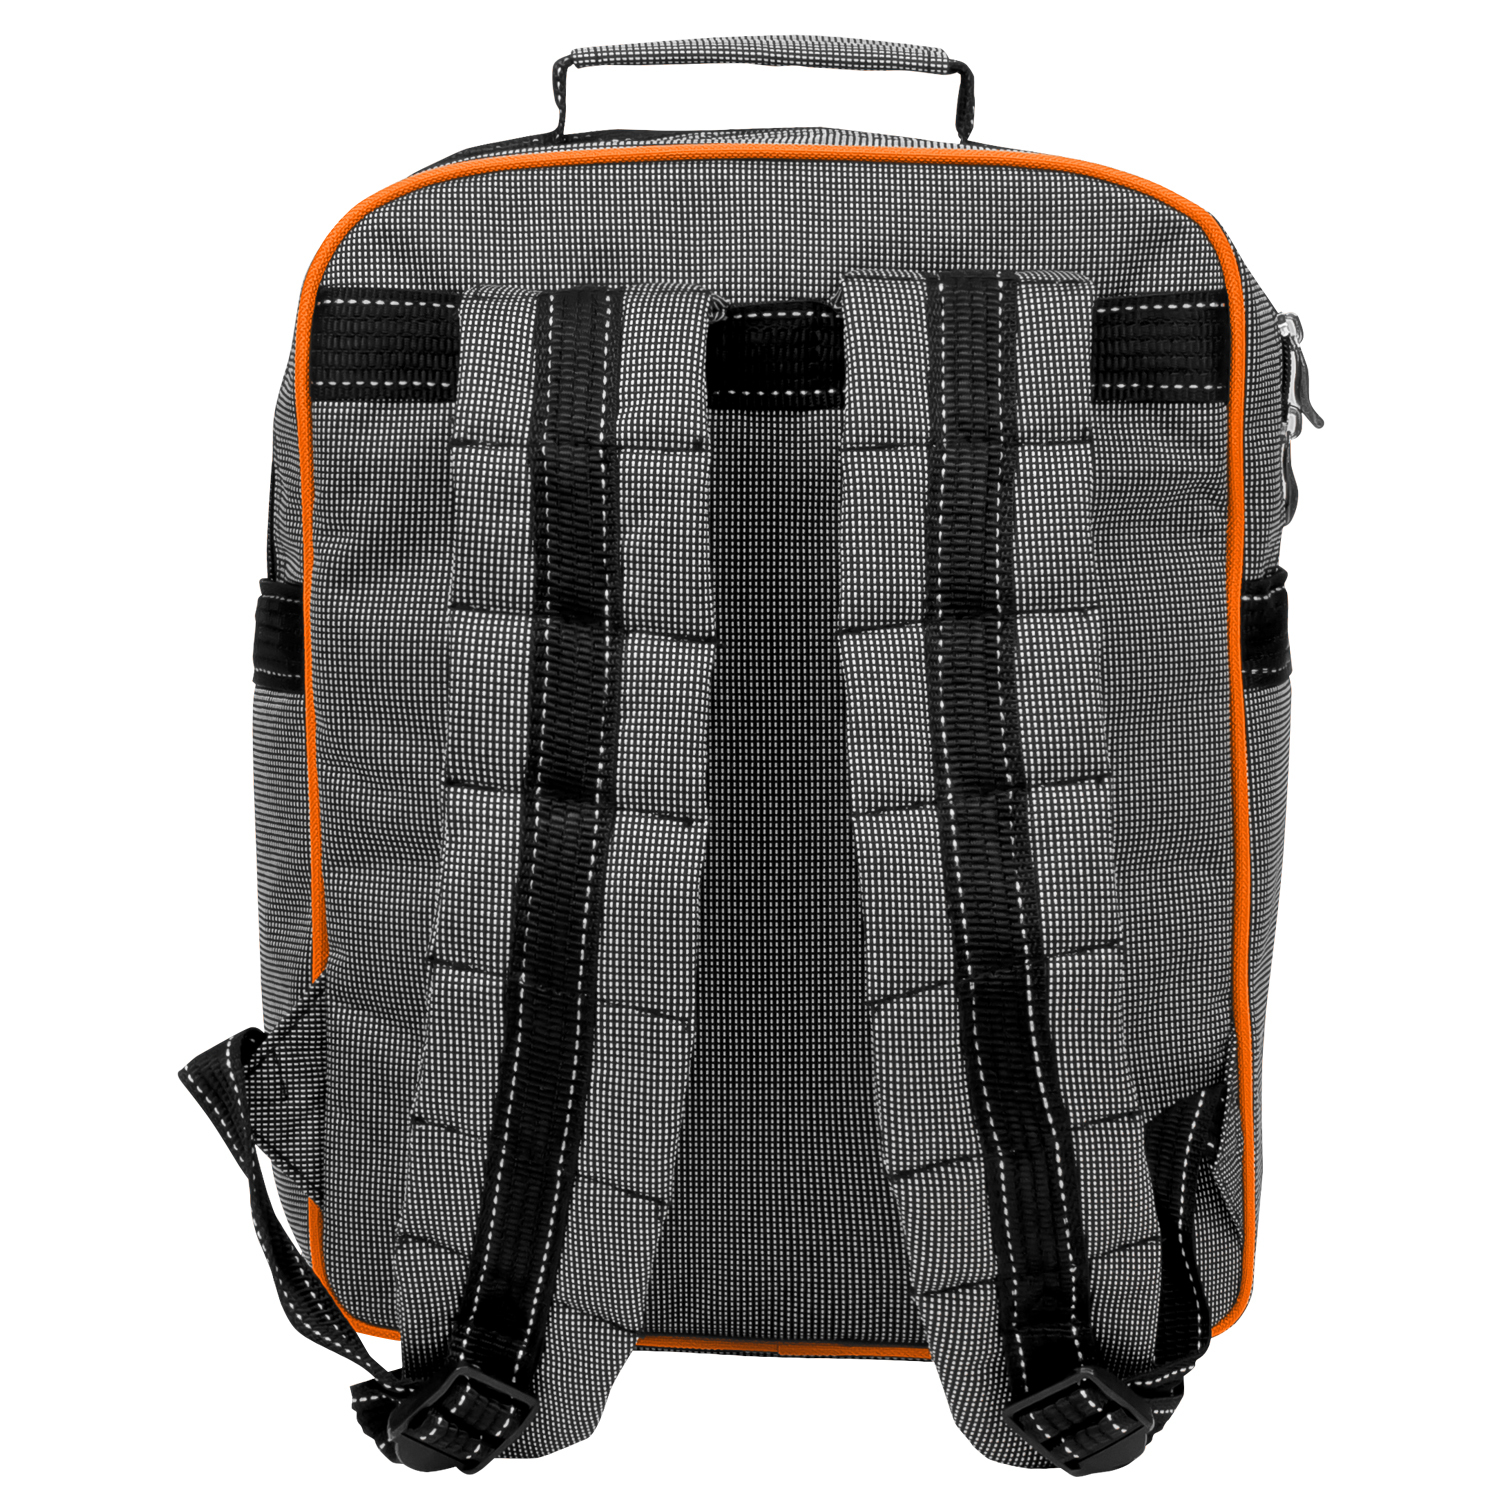 picknick rucksack k hlfach geschirr 2 personen picknicktasche strandtasche ebay. Black Bedroom Furniture Sets. Home Design Ideas